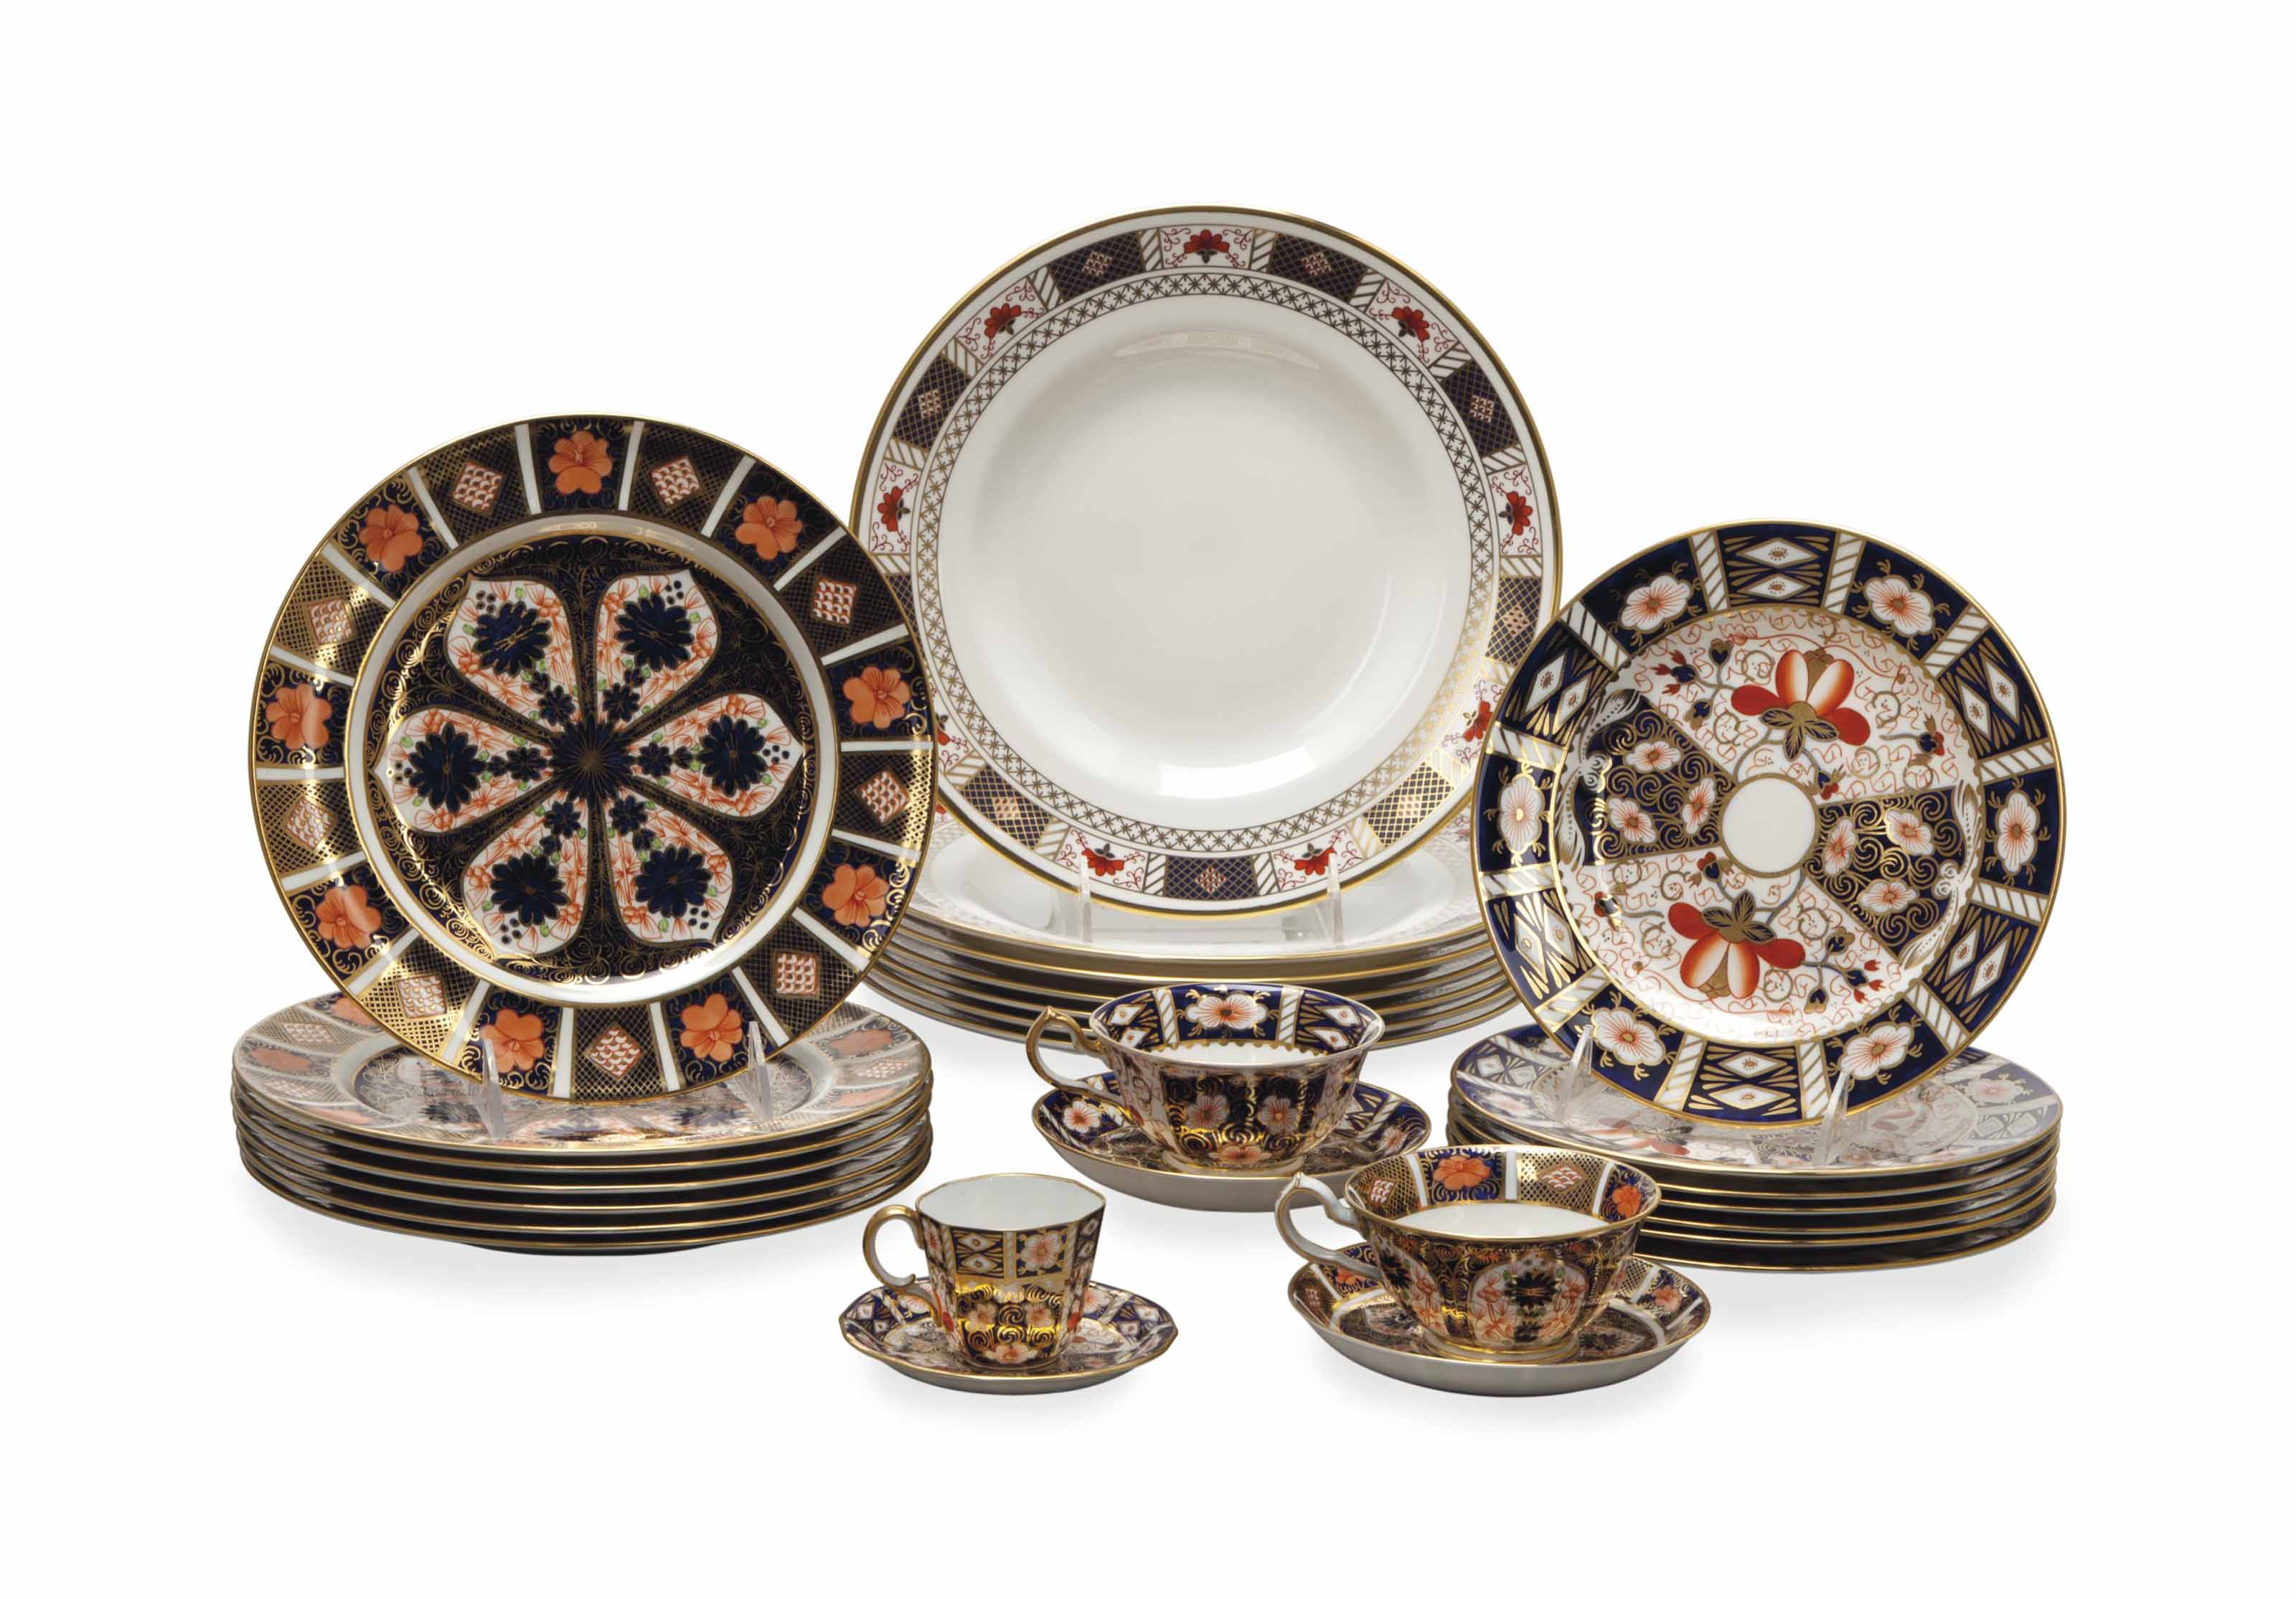 AN ASSEMBLED ROYAL CROWN DERBY TEA SERVICE,